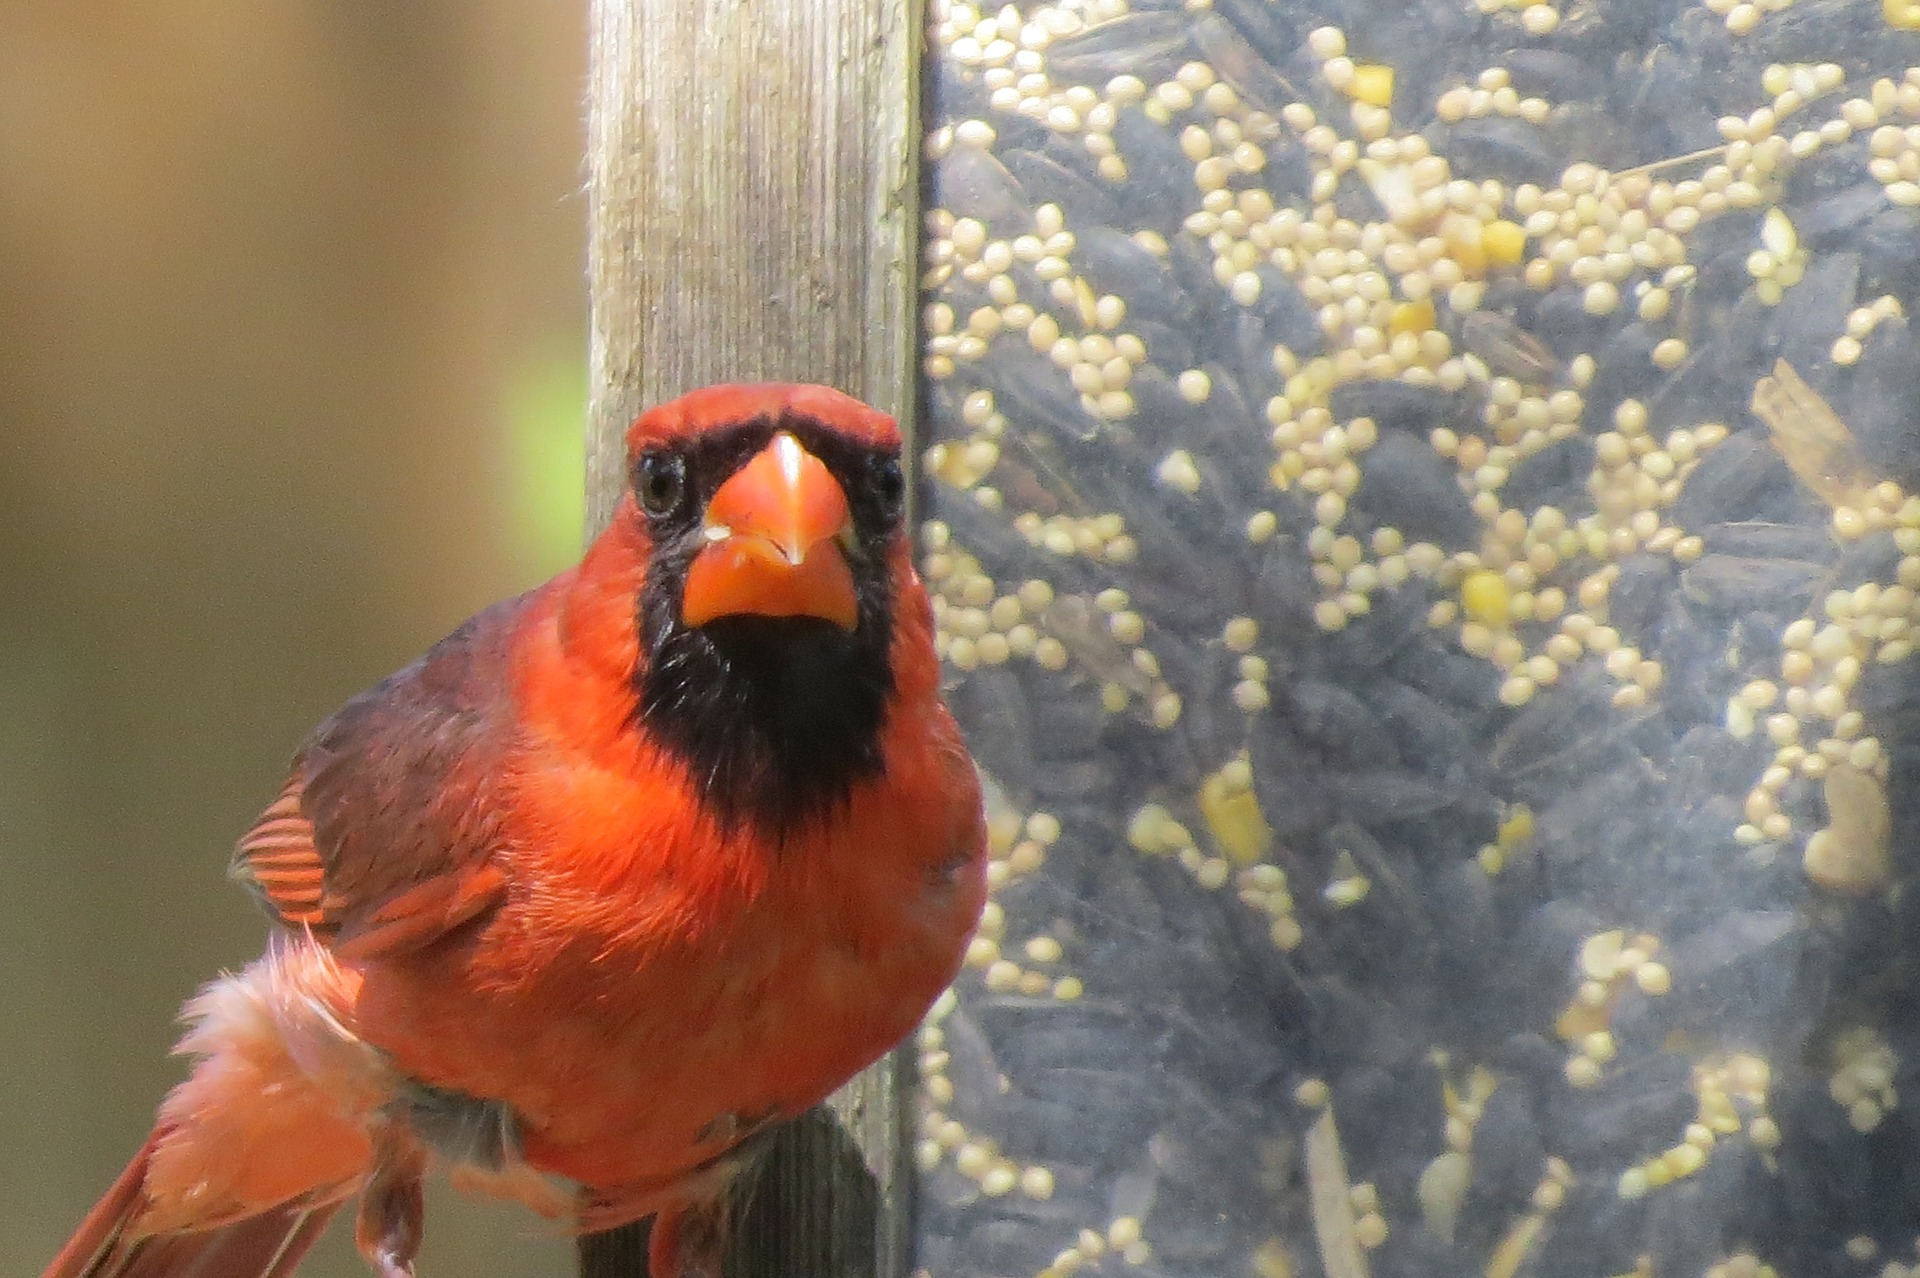 northern cardinal - why do birds hit windows